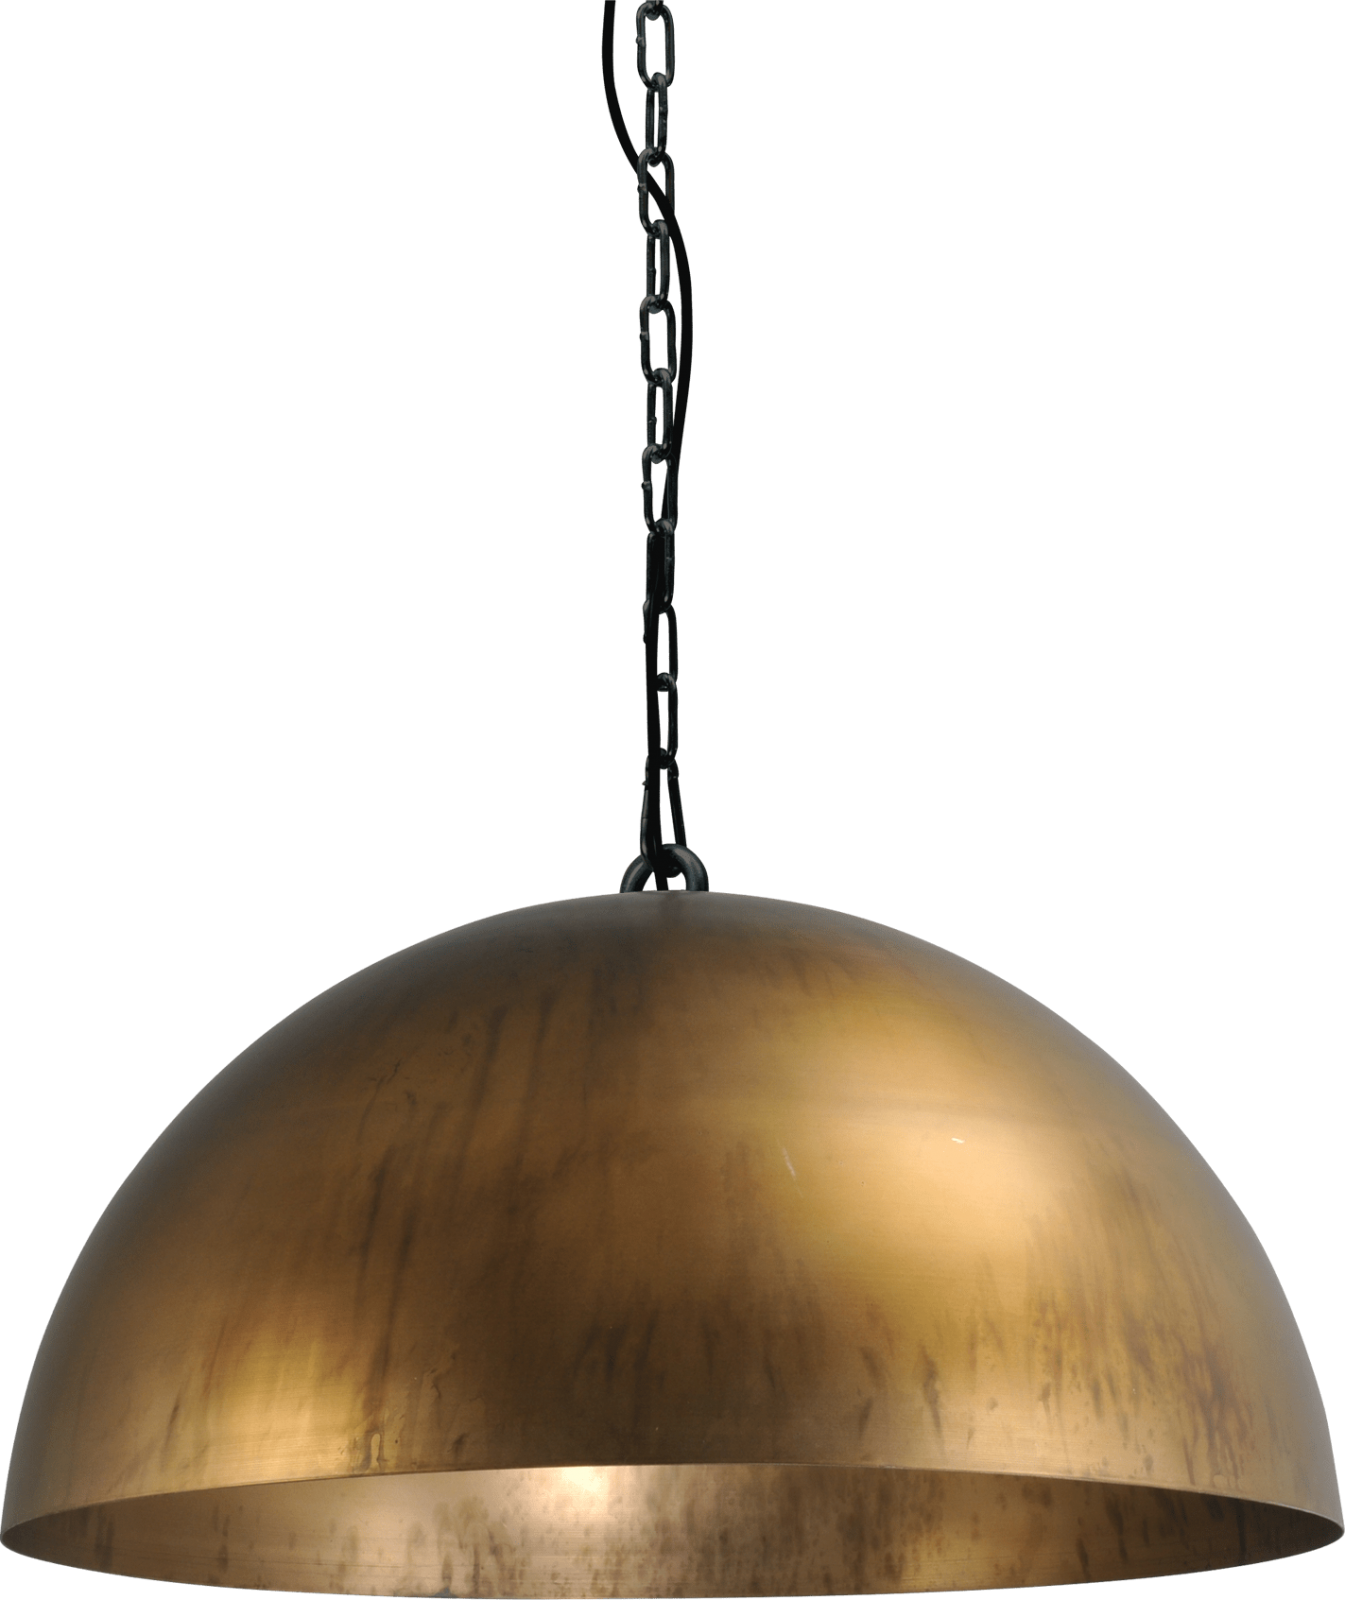 Larino Antique Brass HL LARINO D.50CM ANTIQUE BRASS EXTERIOR